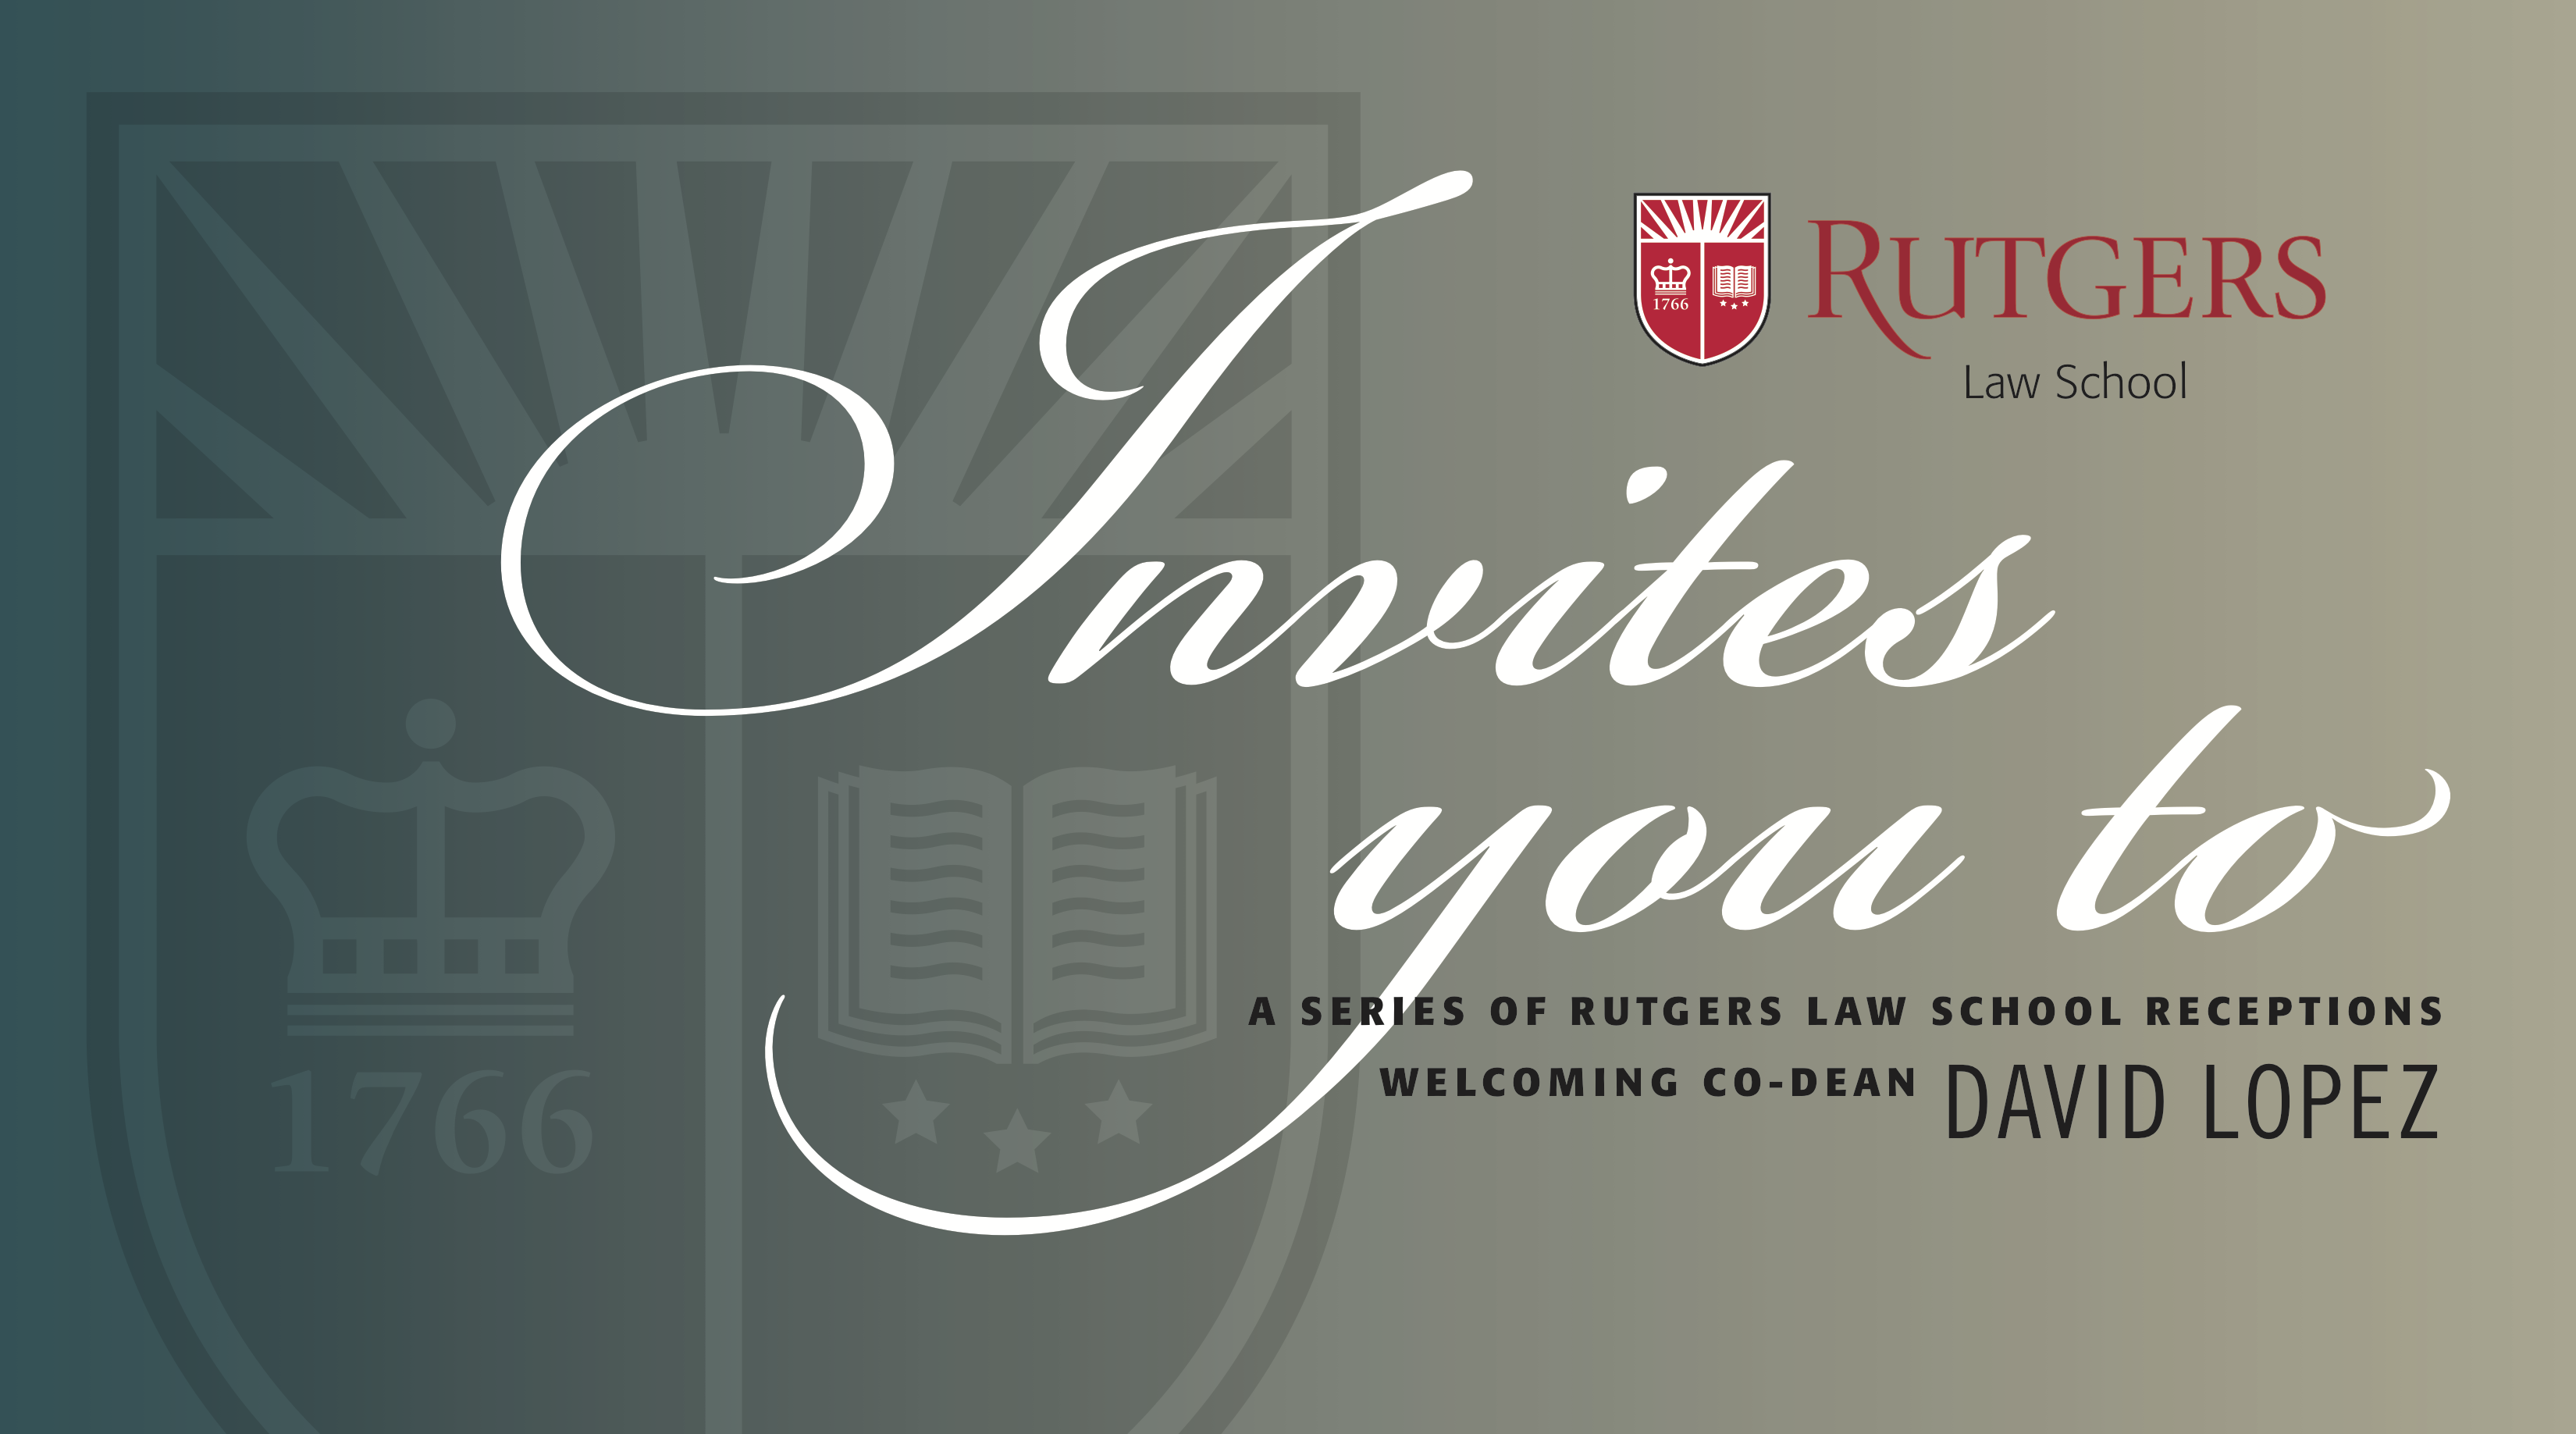 Rutgers Law School invites you to a series of Rutgers Law School receptions welcoming Co-Dean David Lopez.